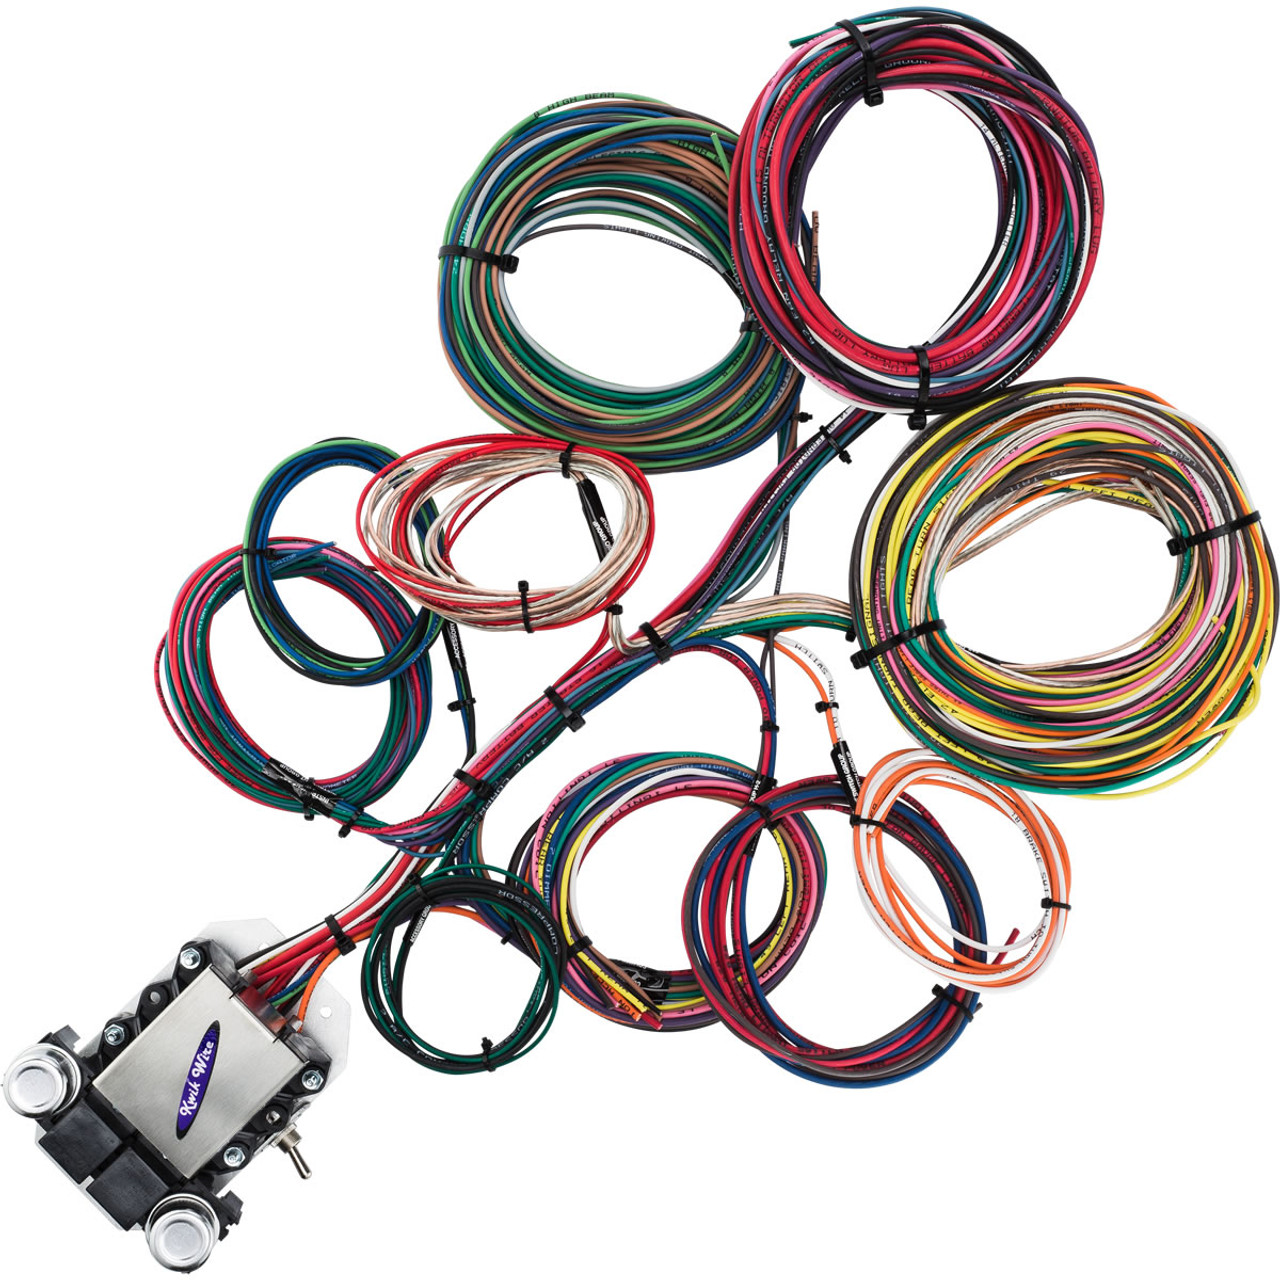 Wiring Harness Jobs Usa Data Ford Engine Kit 14 Circuit Wire Kwikwire Com Electrify Your Ride Rh Kits